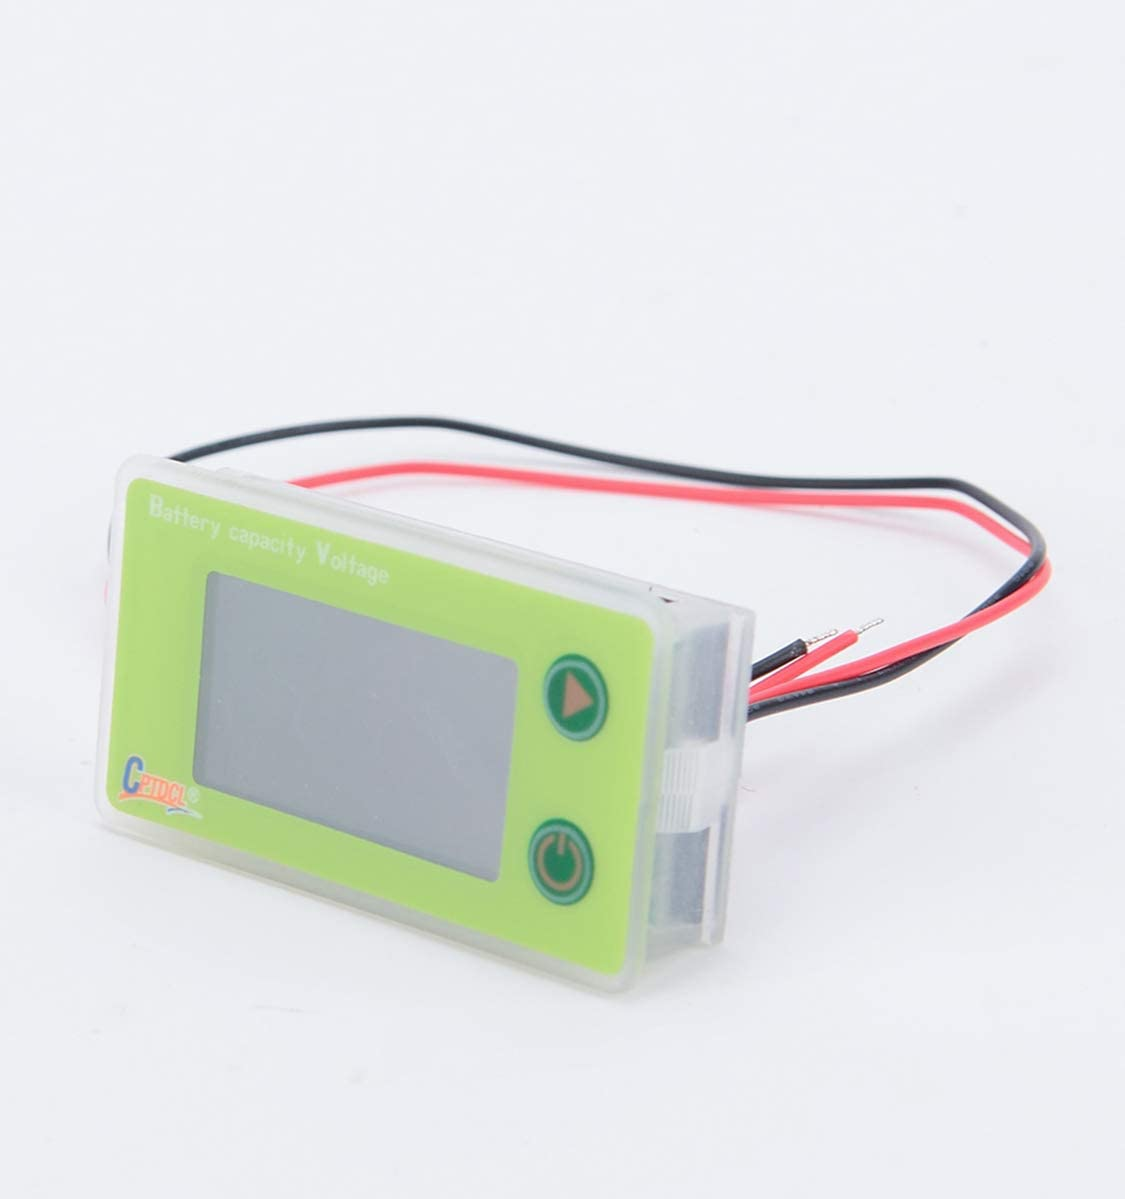 Green CPTDCL Multifunction 36V LCD Lead Acid Battery Capacity Meter Voltmeter with Temperature Display